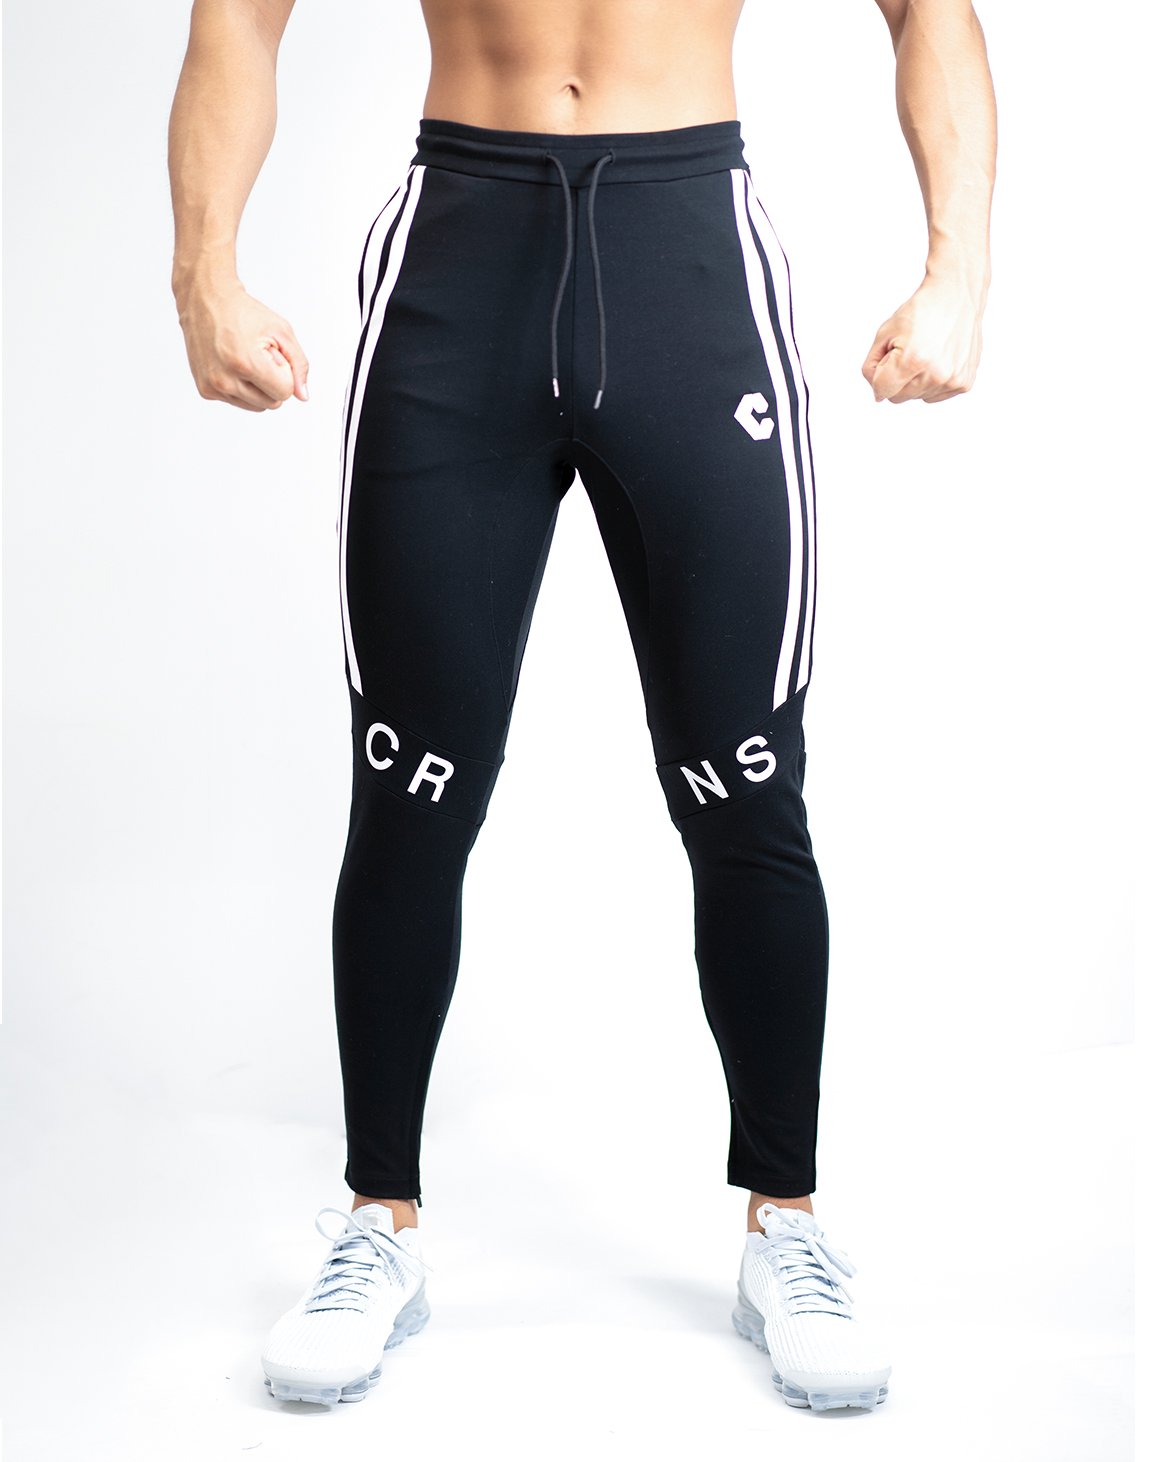 <img class='new_mark_img1' src='https://img.shop-pro.jp/img/new/icons1.gif' style='border:none;display:inline;margin:0px;padding:0px;width:auto;' />CRNS KNEE LOGO PANTS 【BLACK】